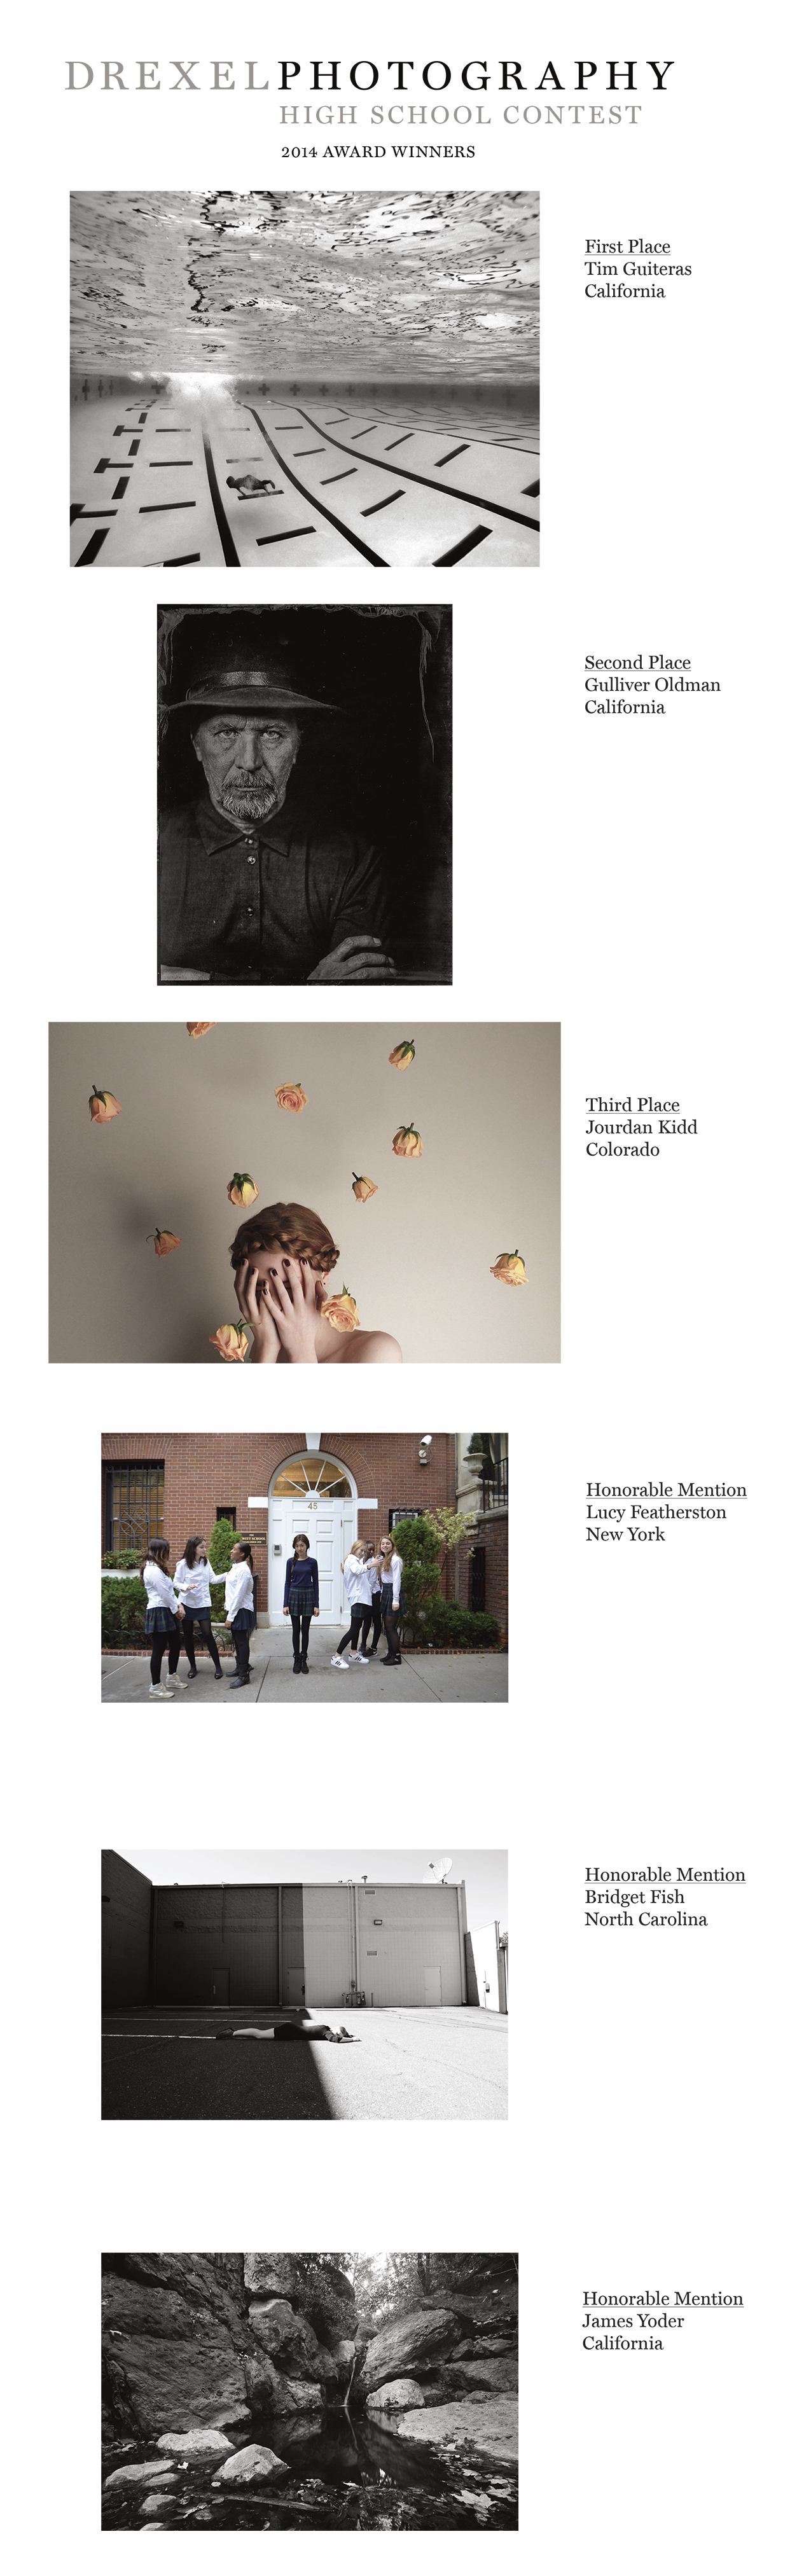 Drexel Photography High Scool Contest 2014 Award Winners